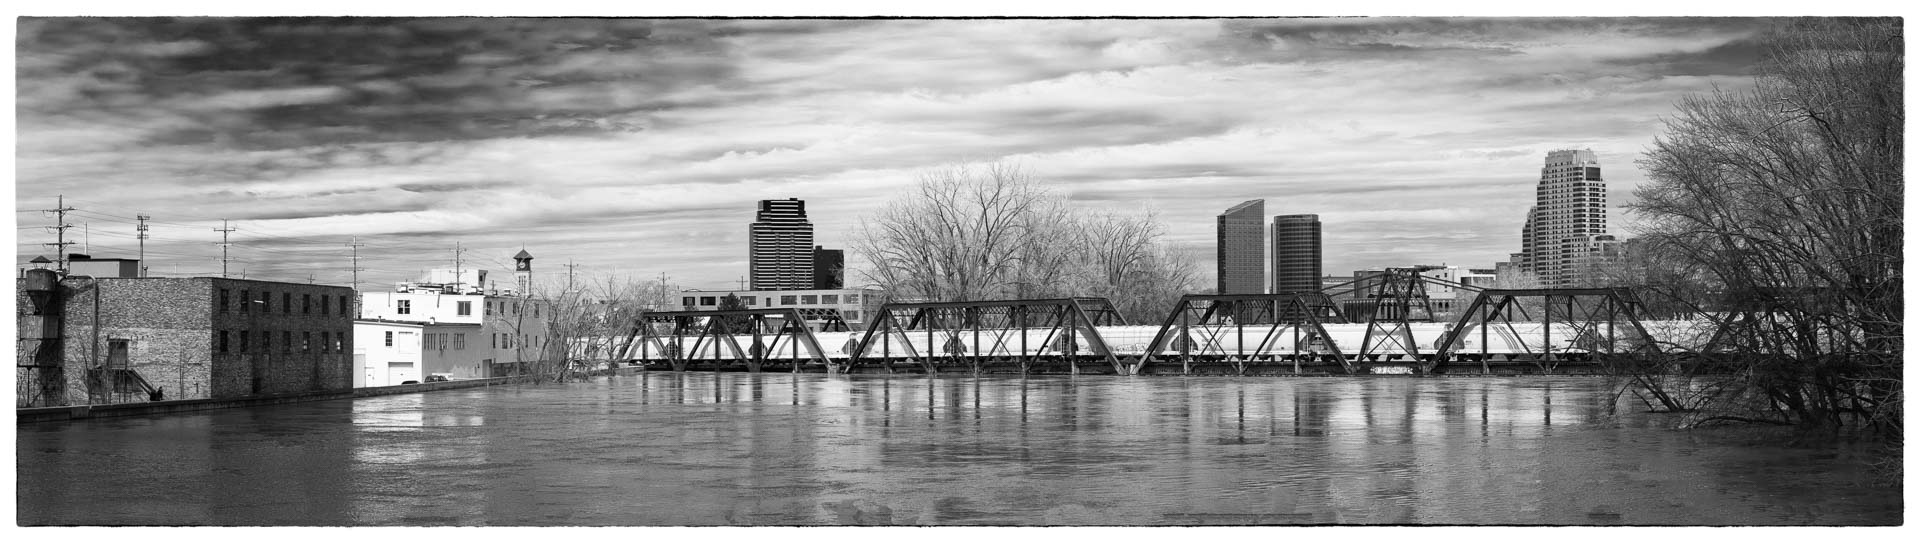 Floodwater View from Wealthy Street Bridge, Grand Rapids, 2013